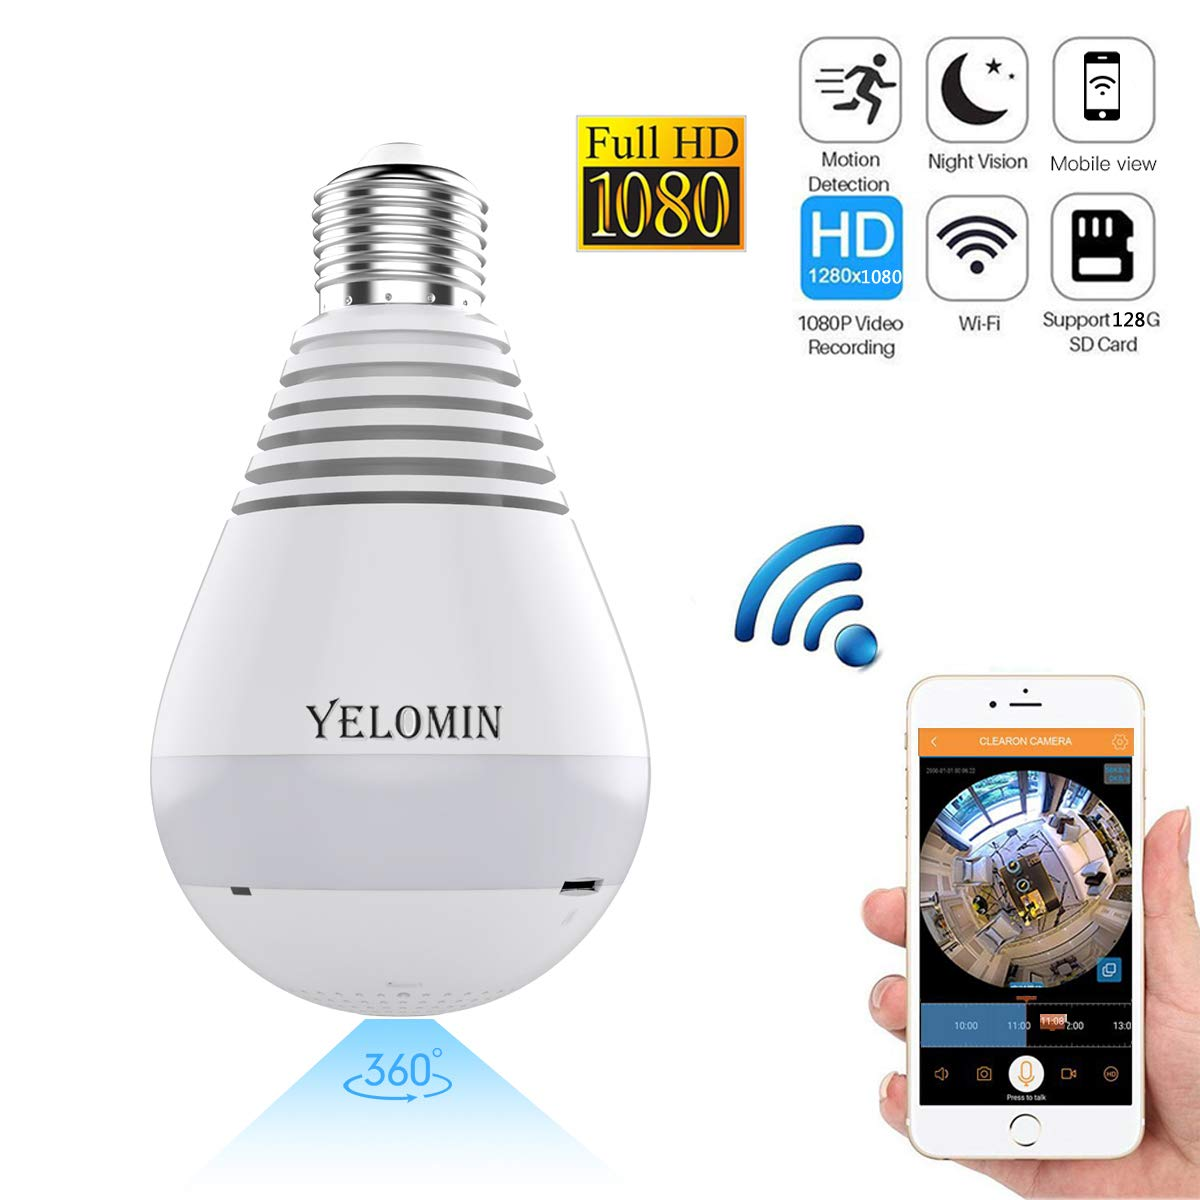 1080P WiFi Secuity Bulb Camera,HD Wireless IP Camera Night Vision VR Panoramic with Motion Detection for Android iOS APP 360 Degree Fisheye Home Surveillance System Remote View White